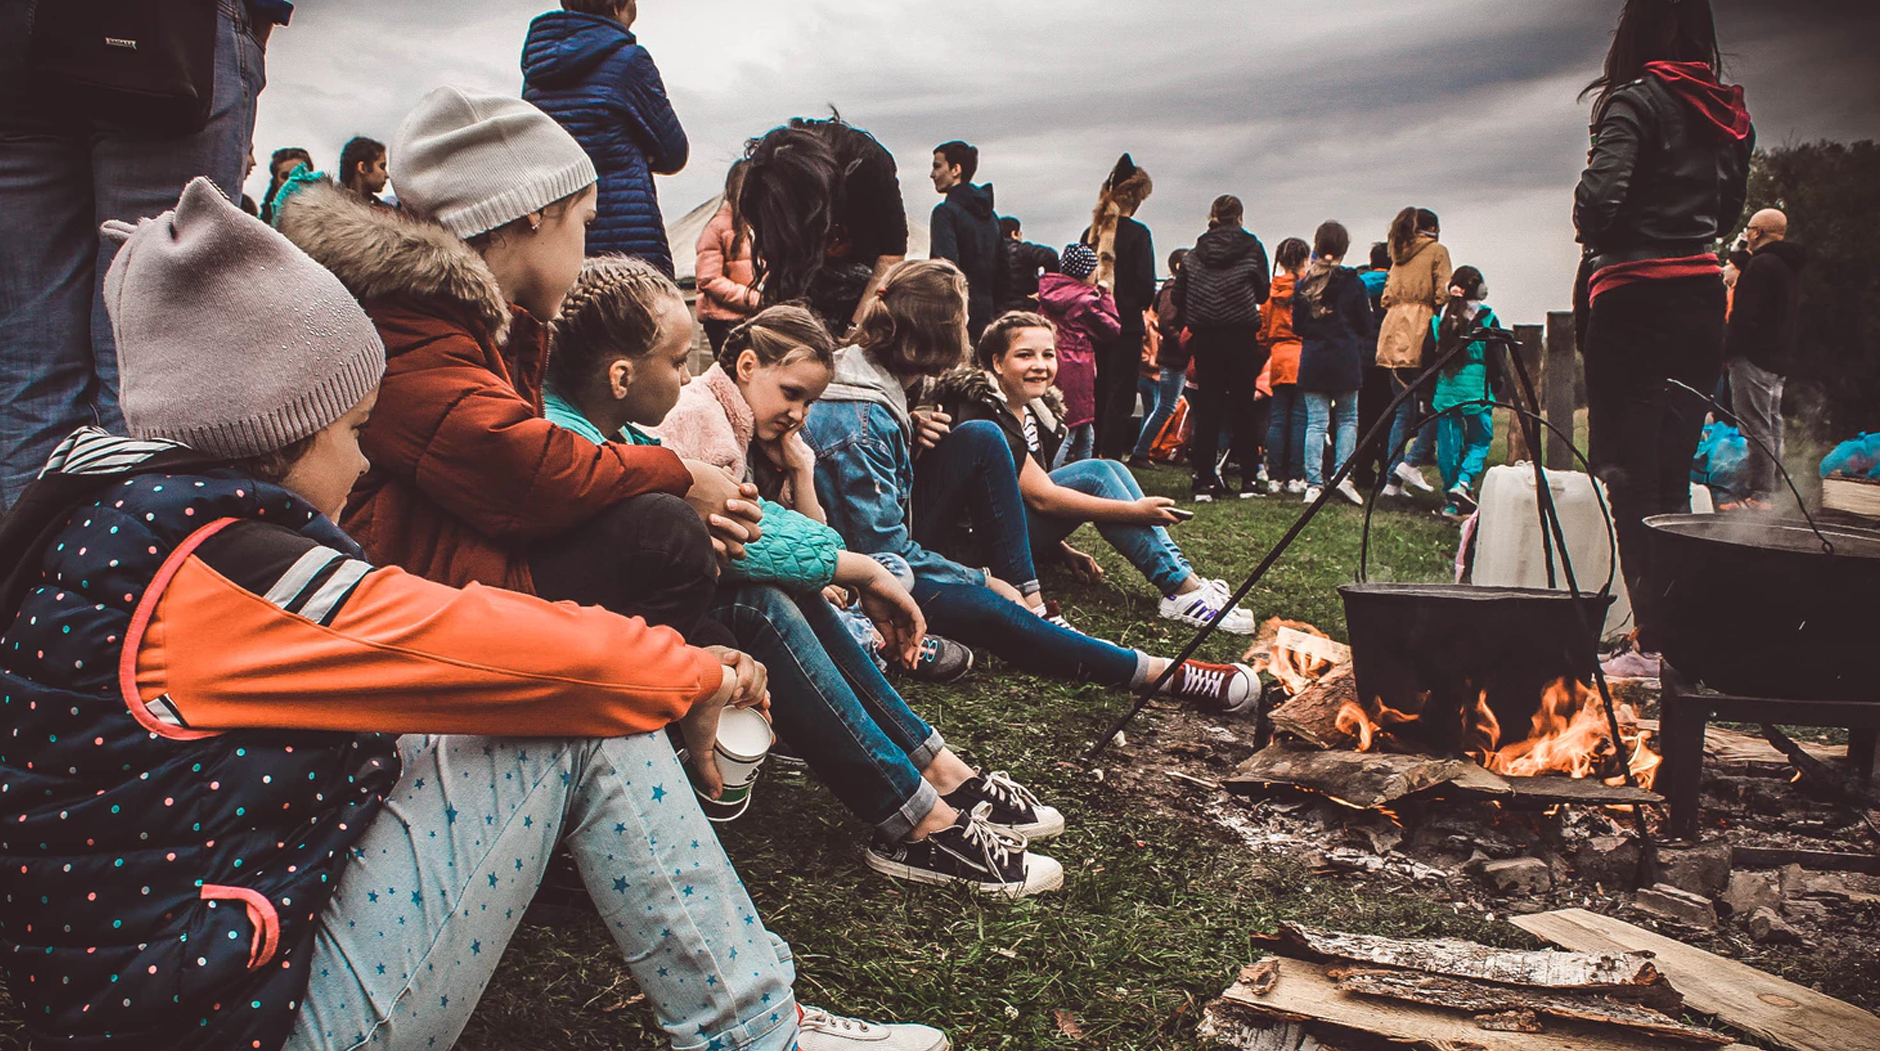 Joining the Big Brother Big Sister Program Post Image campfire with fellow kids - 3 Ways to Support Programs of Foster Care Centers